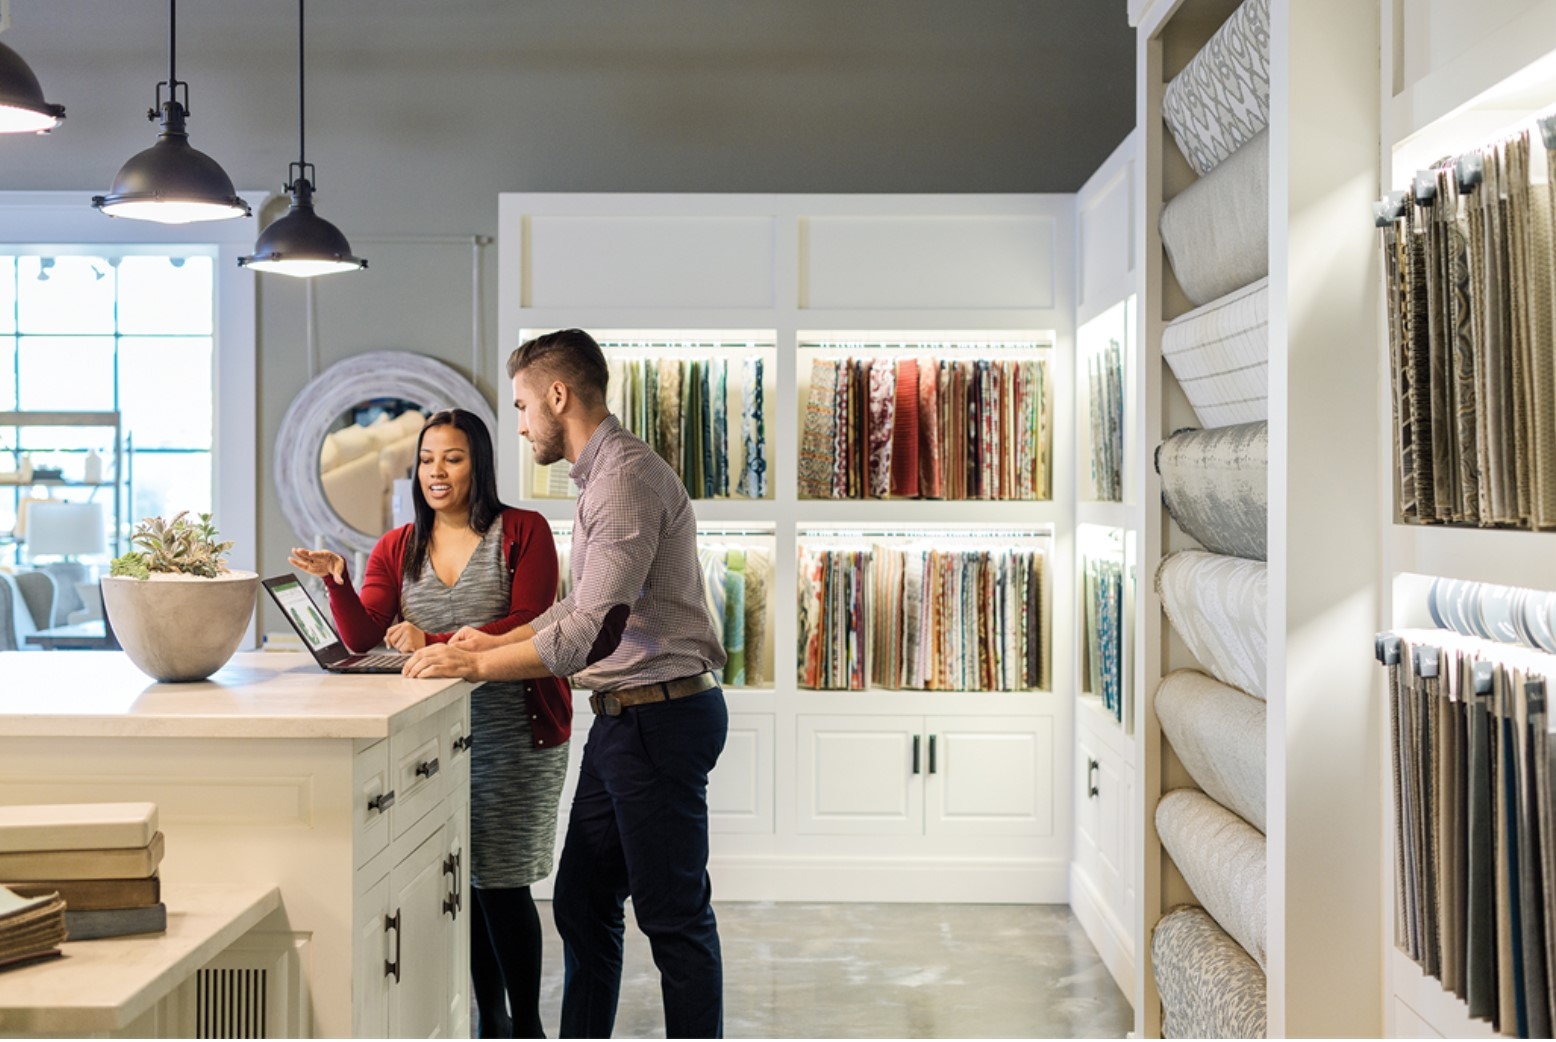 Photograph of a client exploring décor options with the help of a designer in a design studio